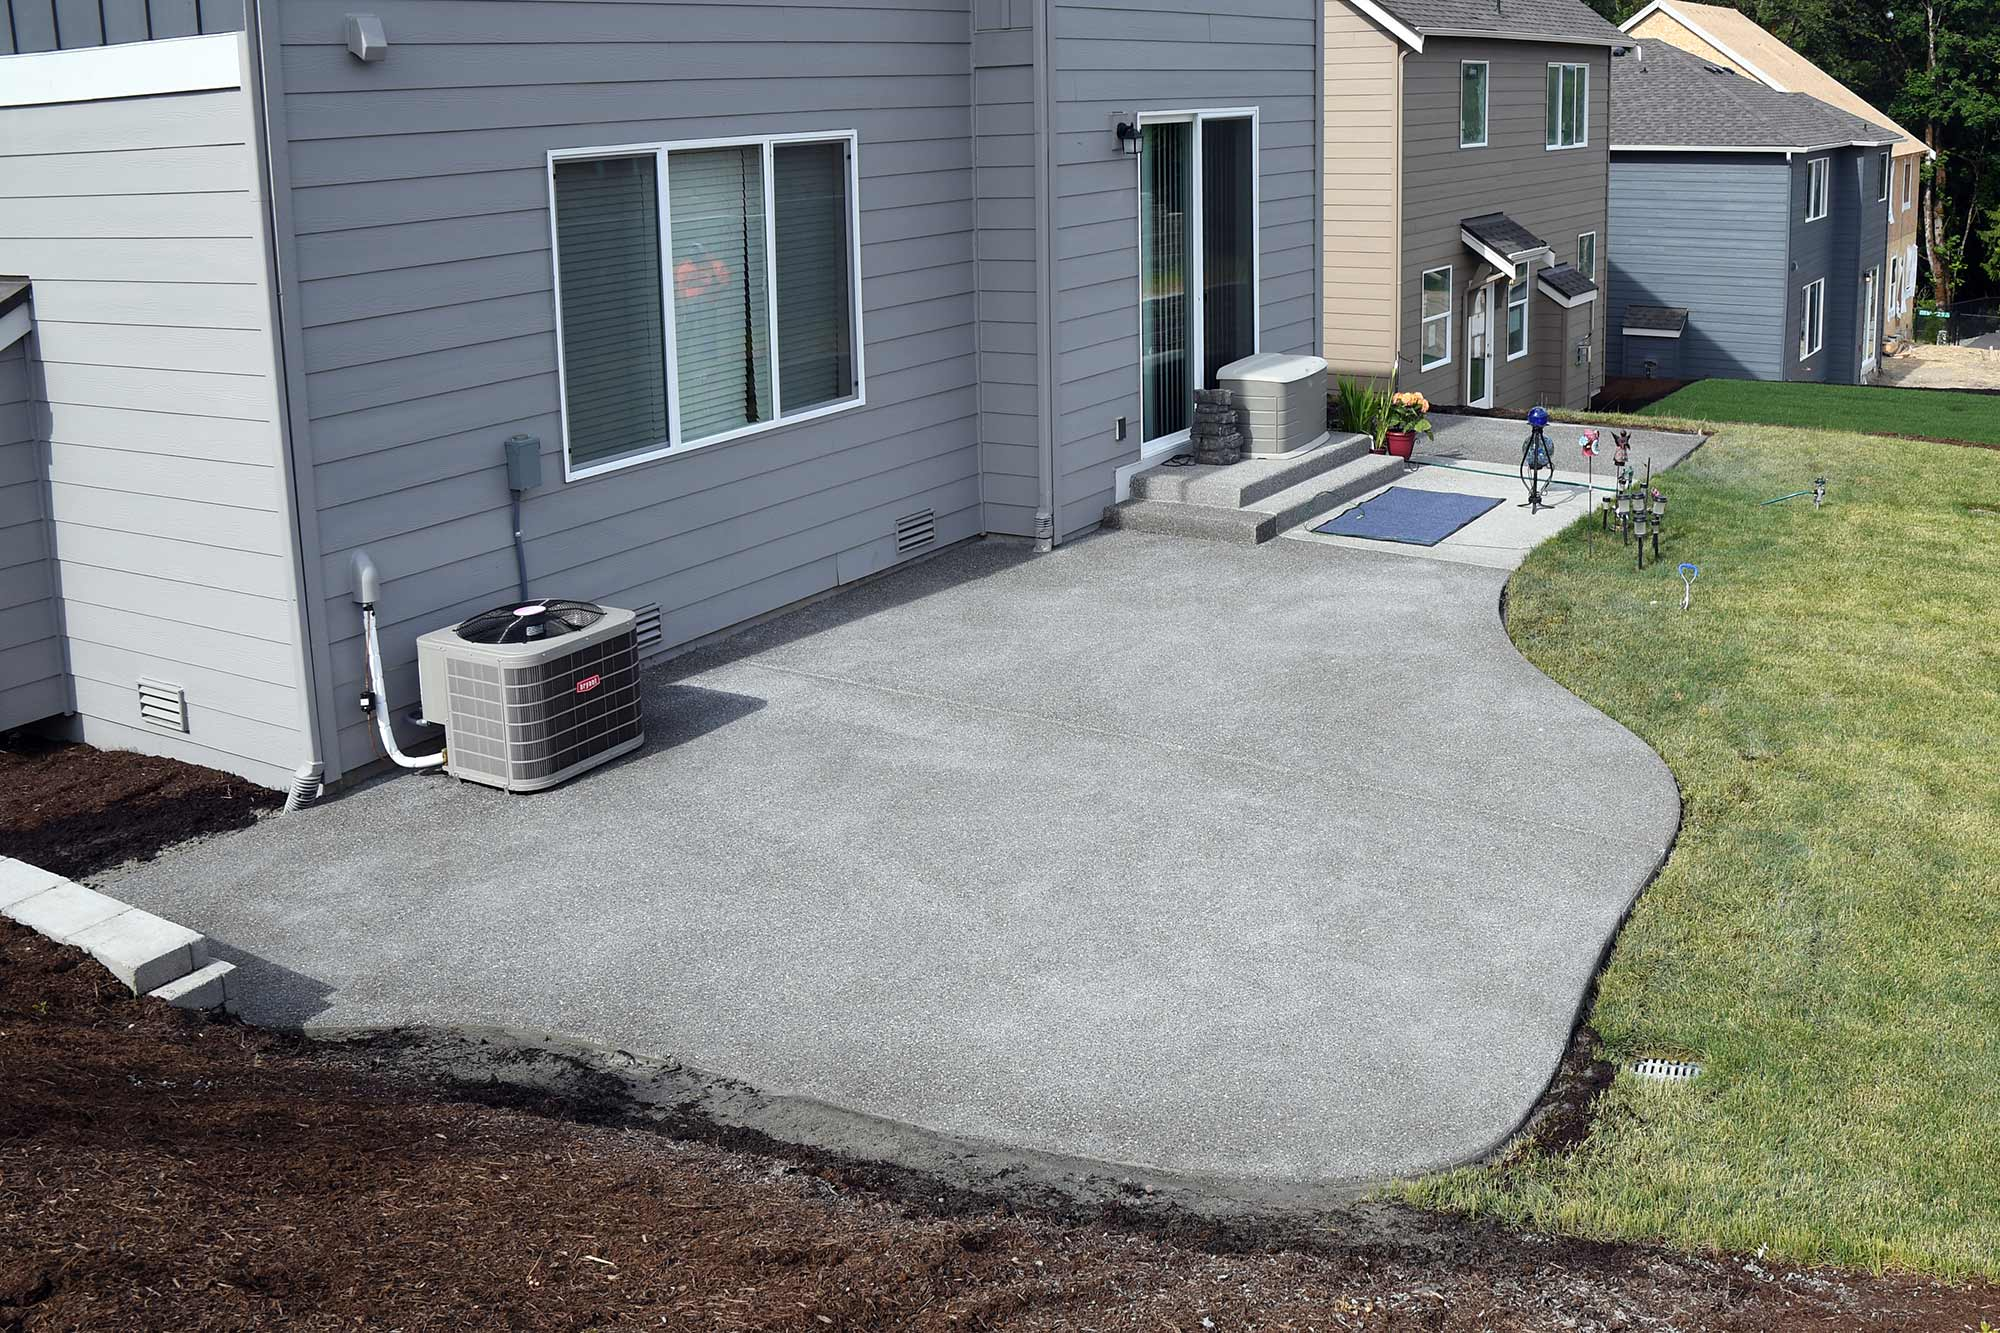 Concrete Patio Installation-San Diego Custom Concrete Pros & Concrete Repair Services